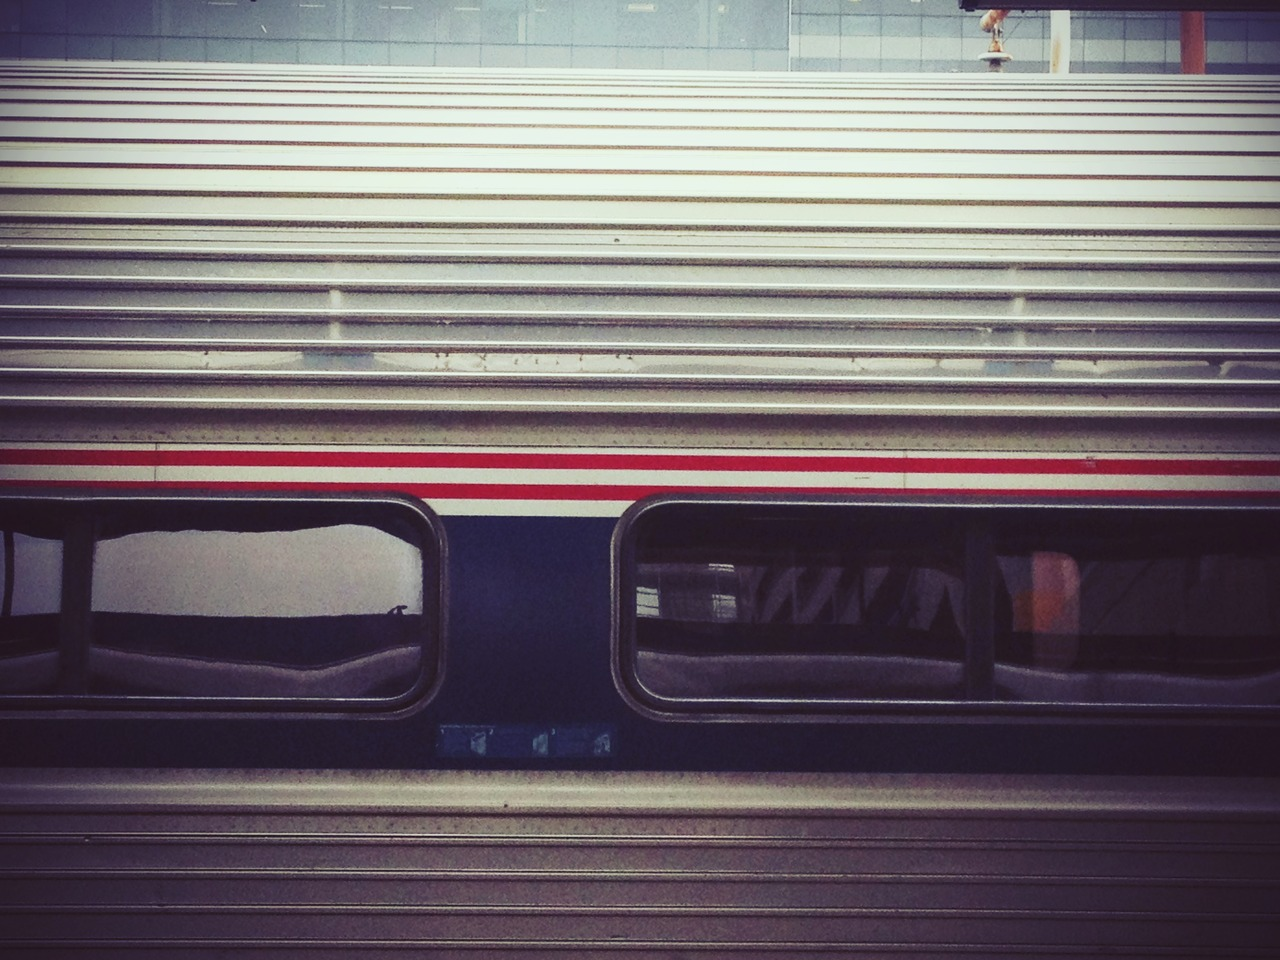 Saw this Awhile Ago, Ride One #peppersearching #pepper #photos #trains #dc #amtrak